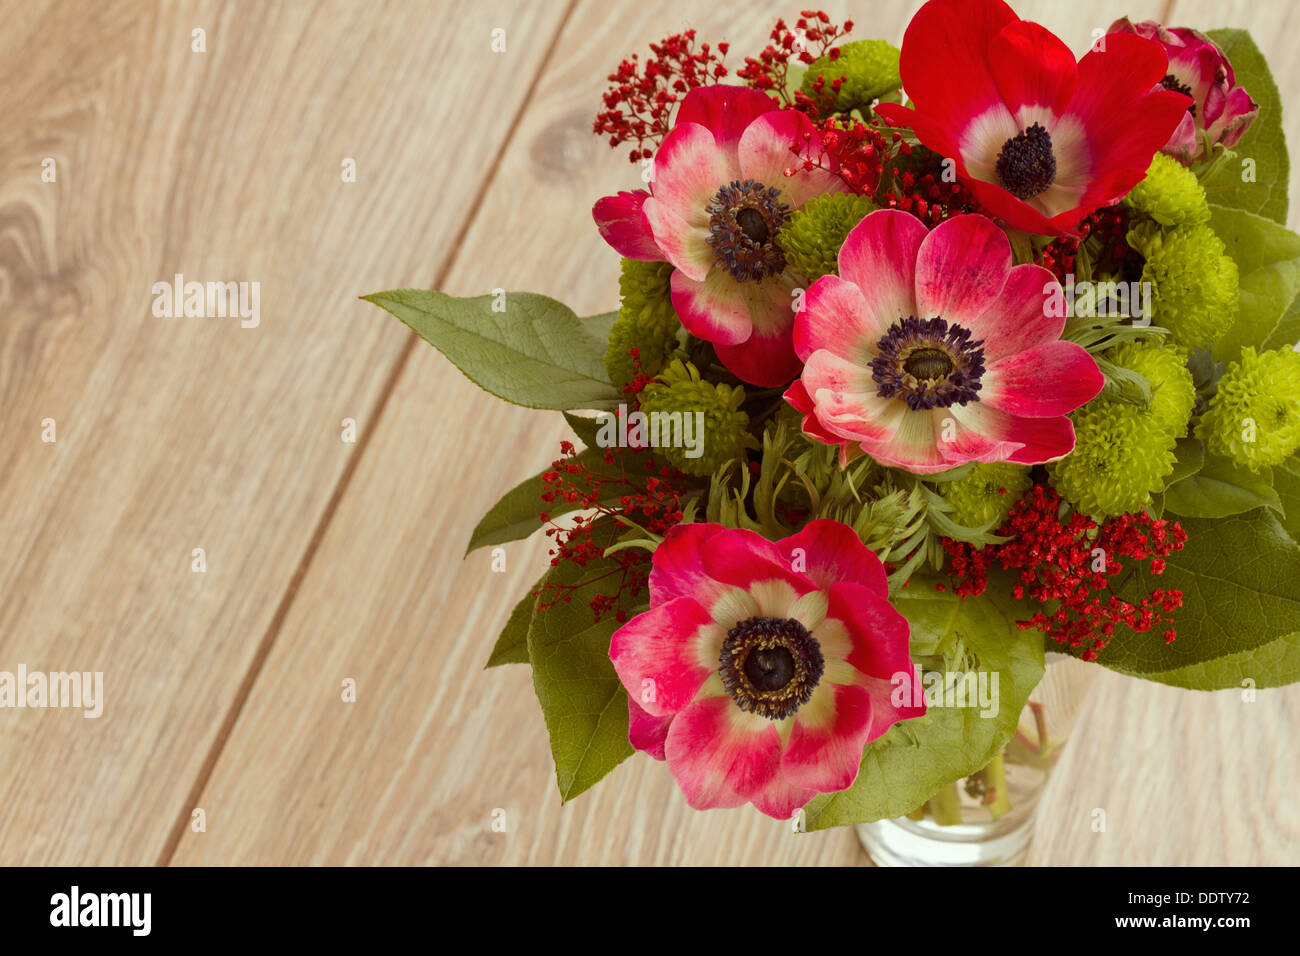 Bouquet of red anemone flowers stock photo 60169846 alamy bouquet of red anemone flowers izmirmasajfo